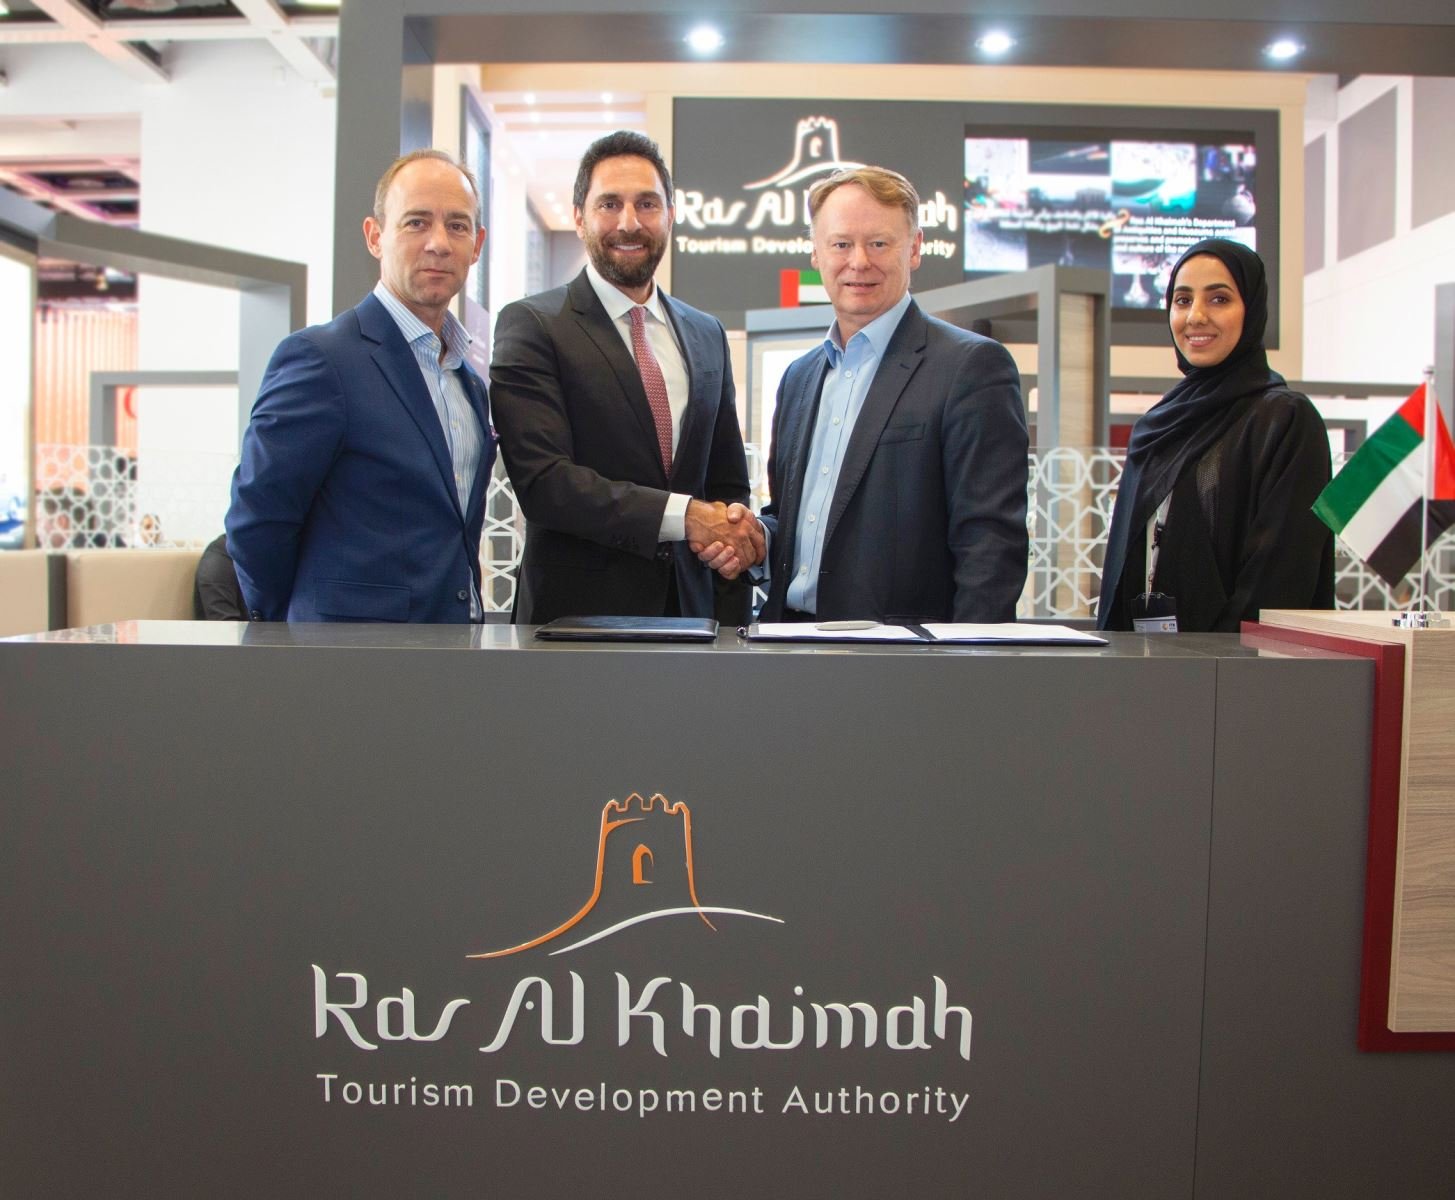 Ras Al Khaimah Tourism Development Authority Enters Into Agreement With Mantis Group To Operate Upcoming Luxury Camp Project On Jebel Jais